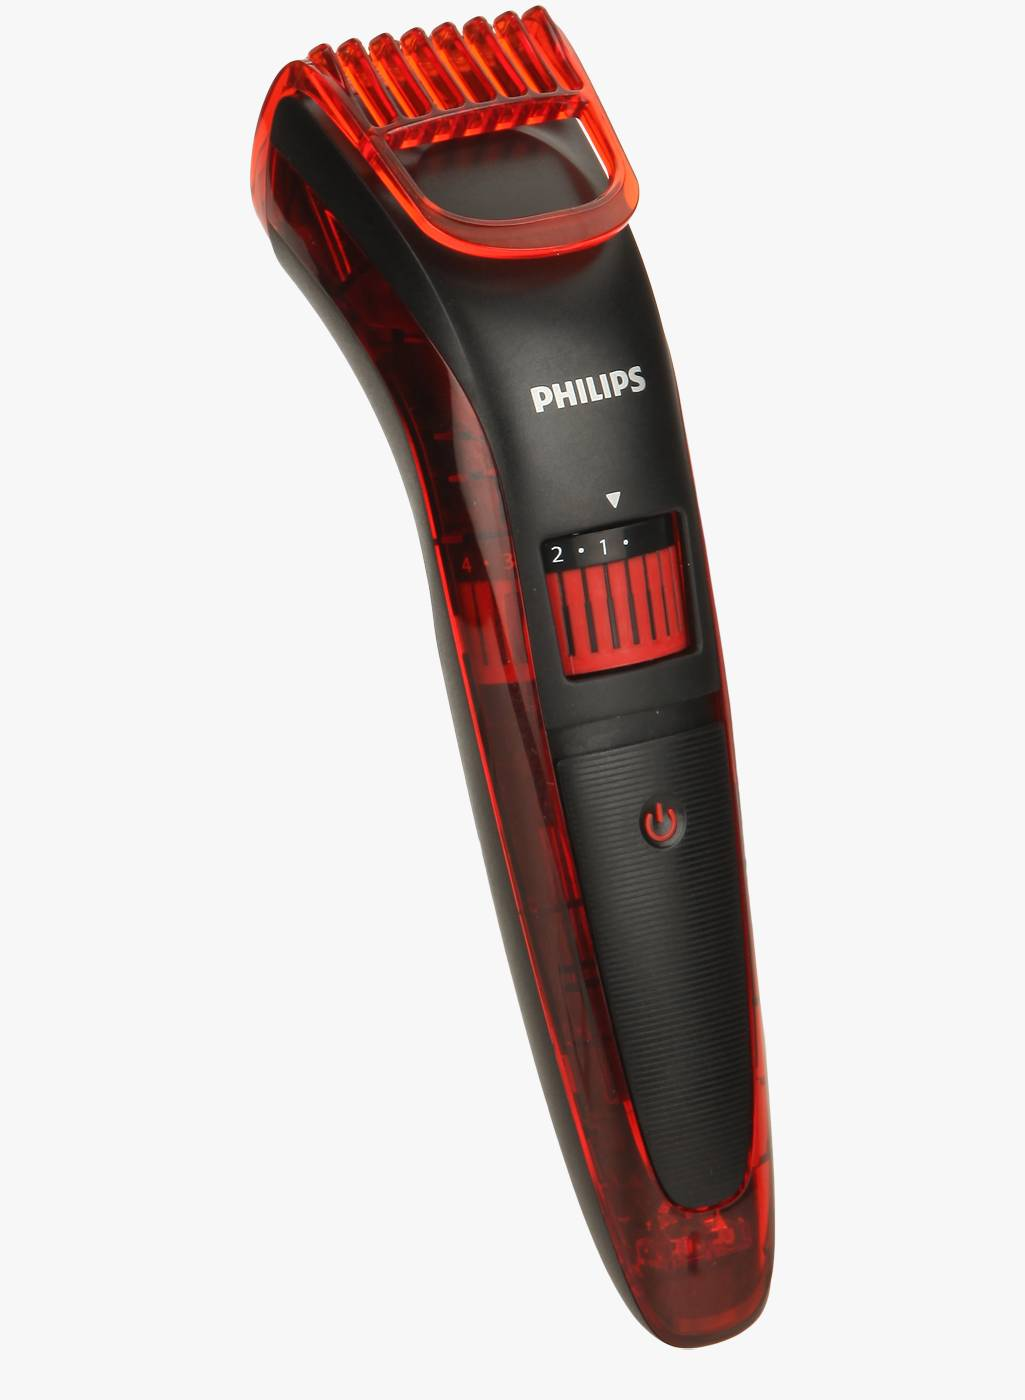 Flat Rs. 500 Off On All Trimmers + 10% Cashback through Freecharge Wallet